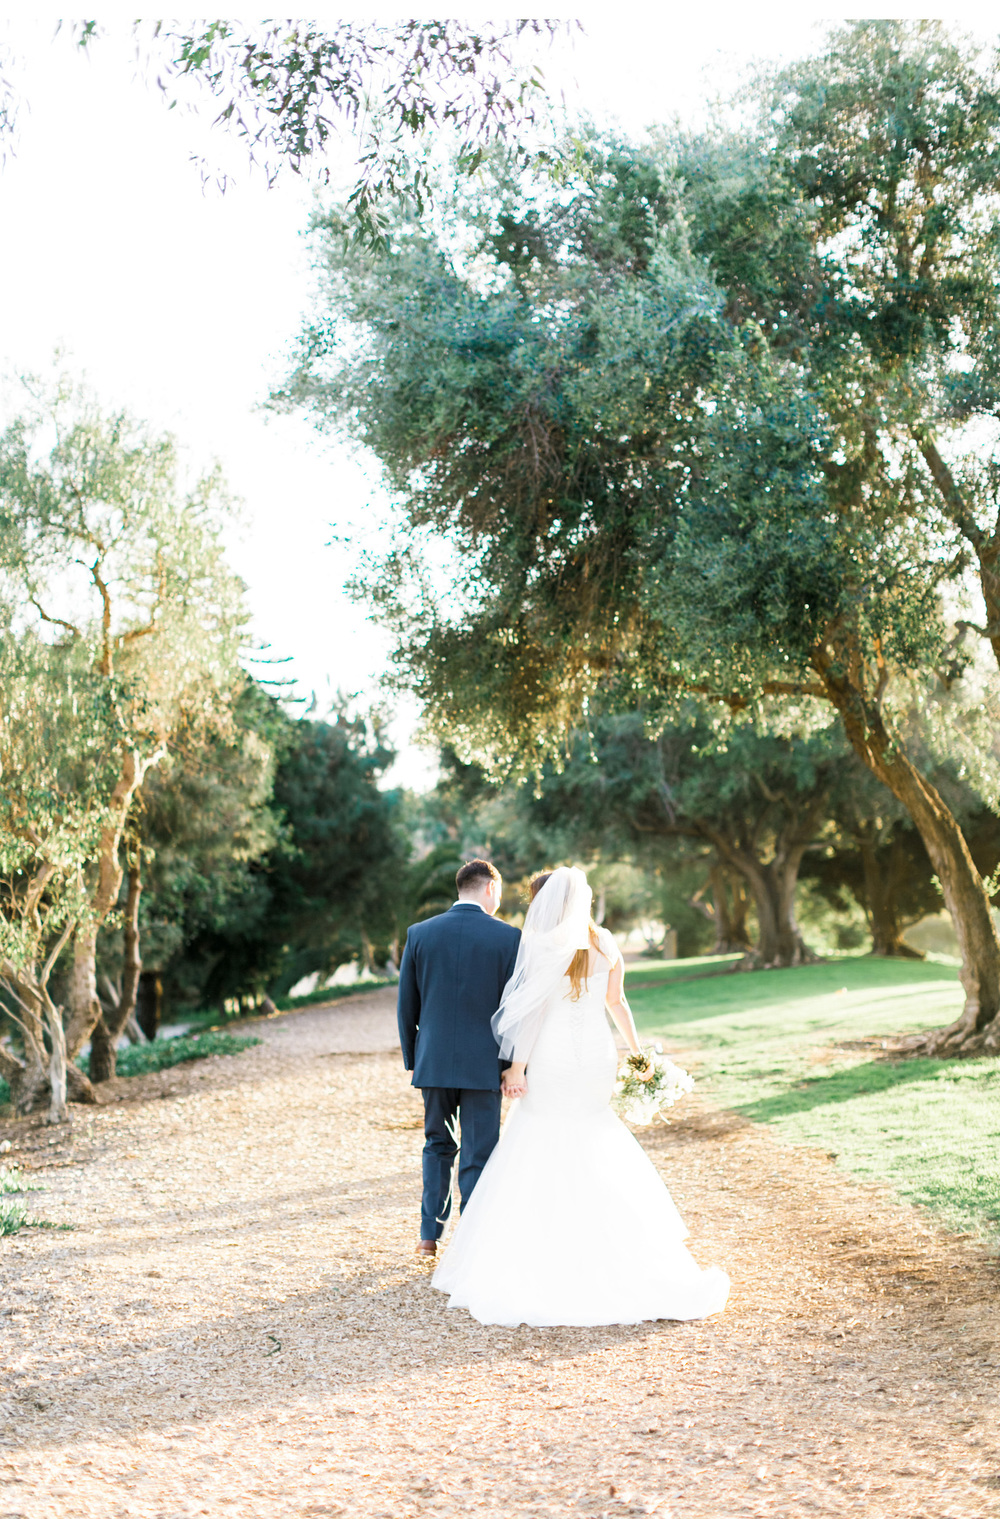 Backyard-Wedding-Southern-CA-Natalie-Schutt-Photography_03.jpg